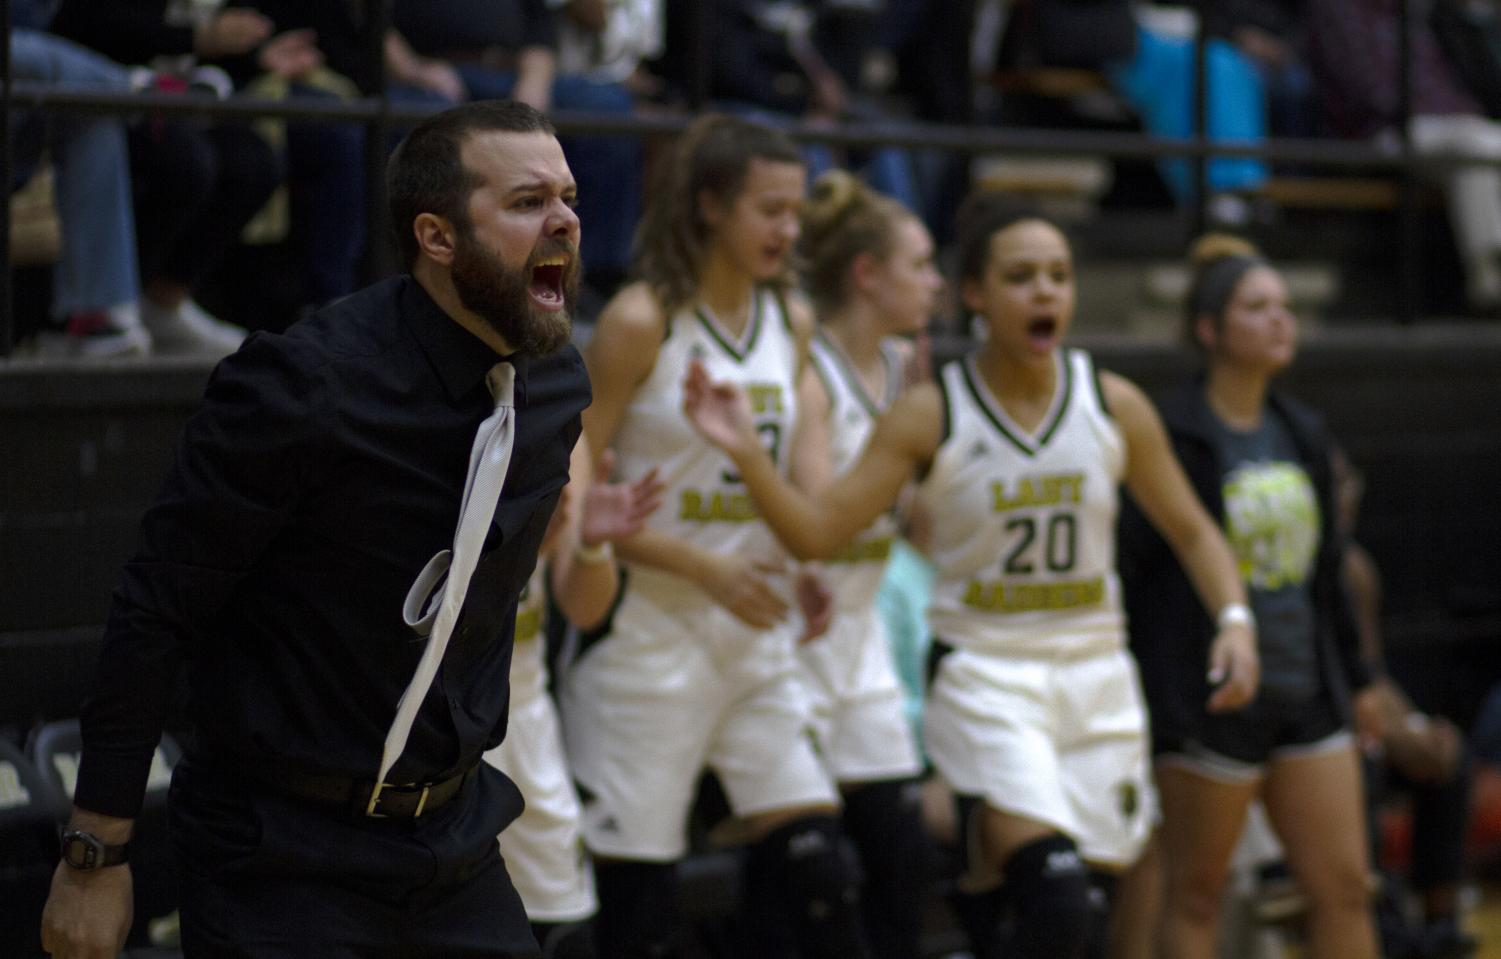 Coach Kendall Webb at last year's girls basketball game.